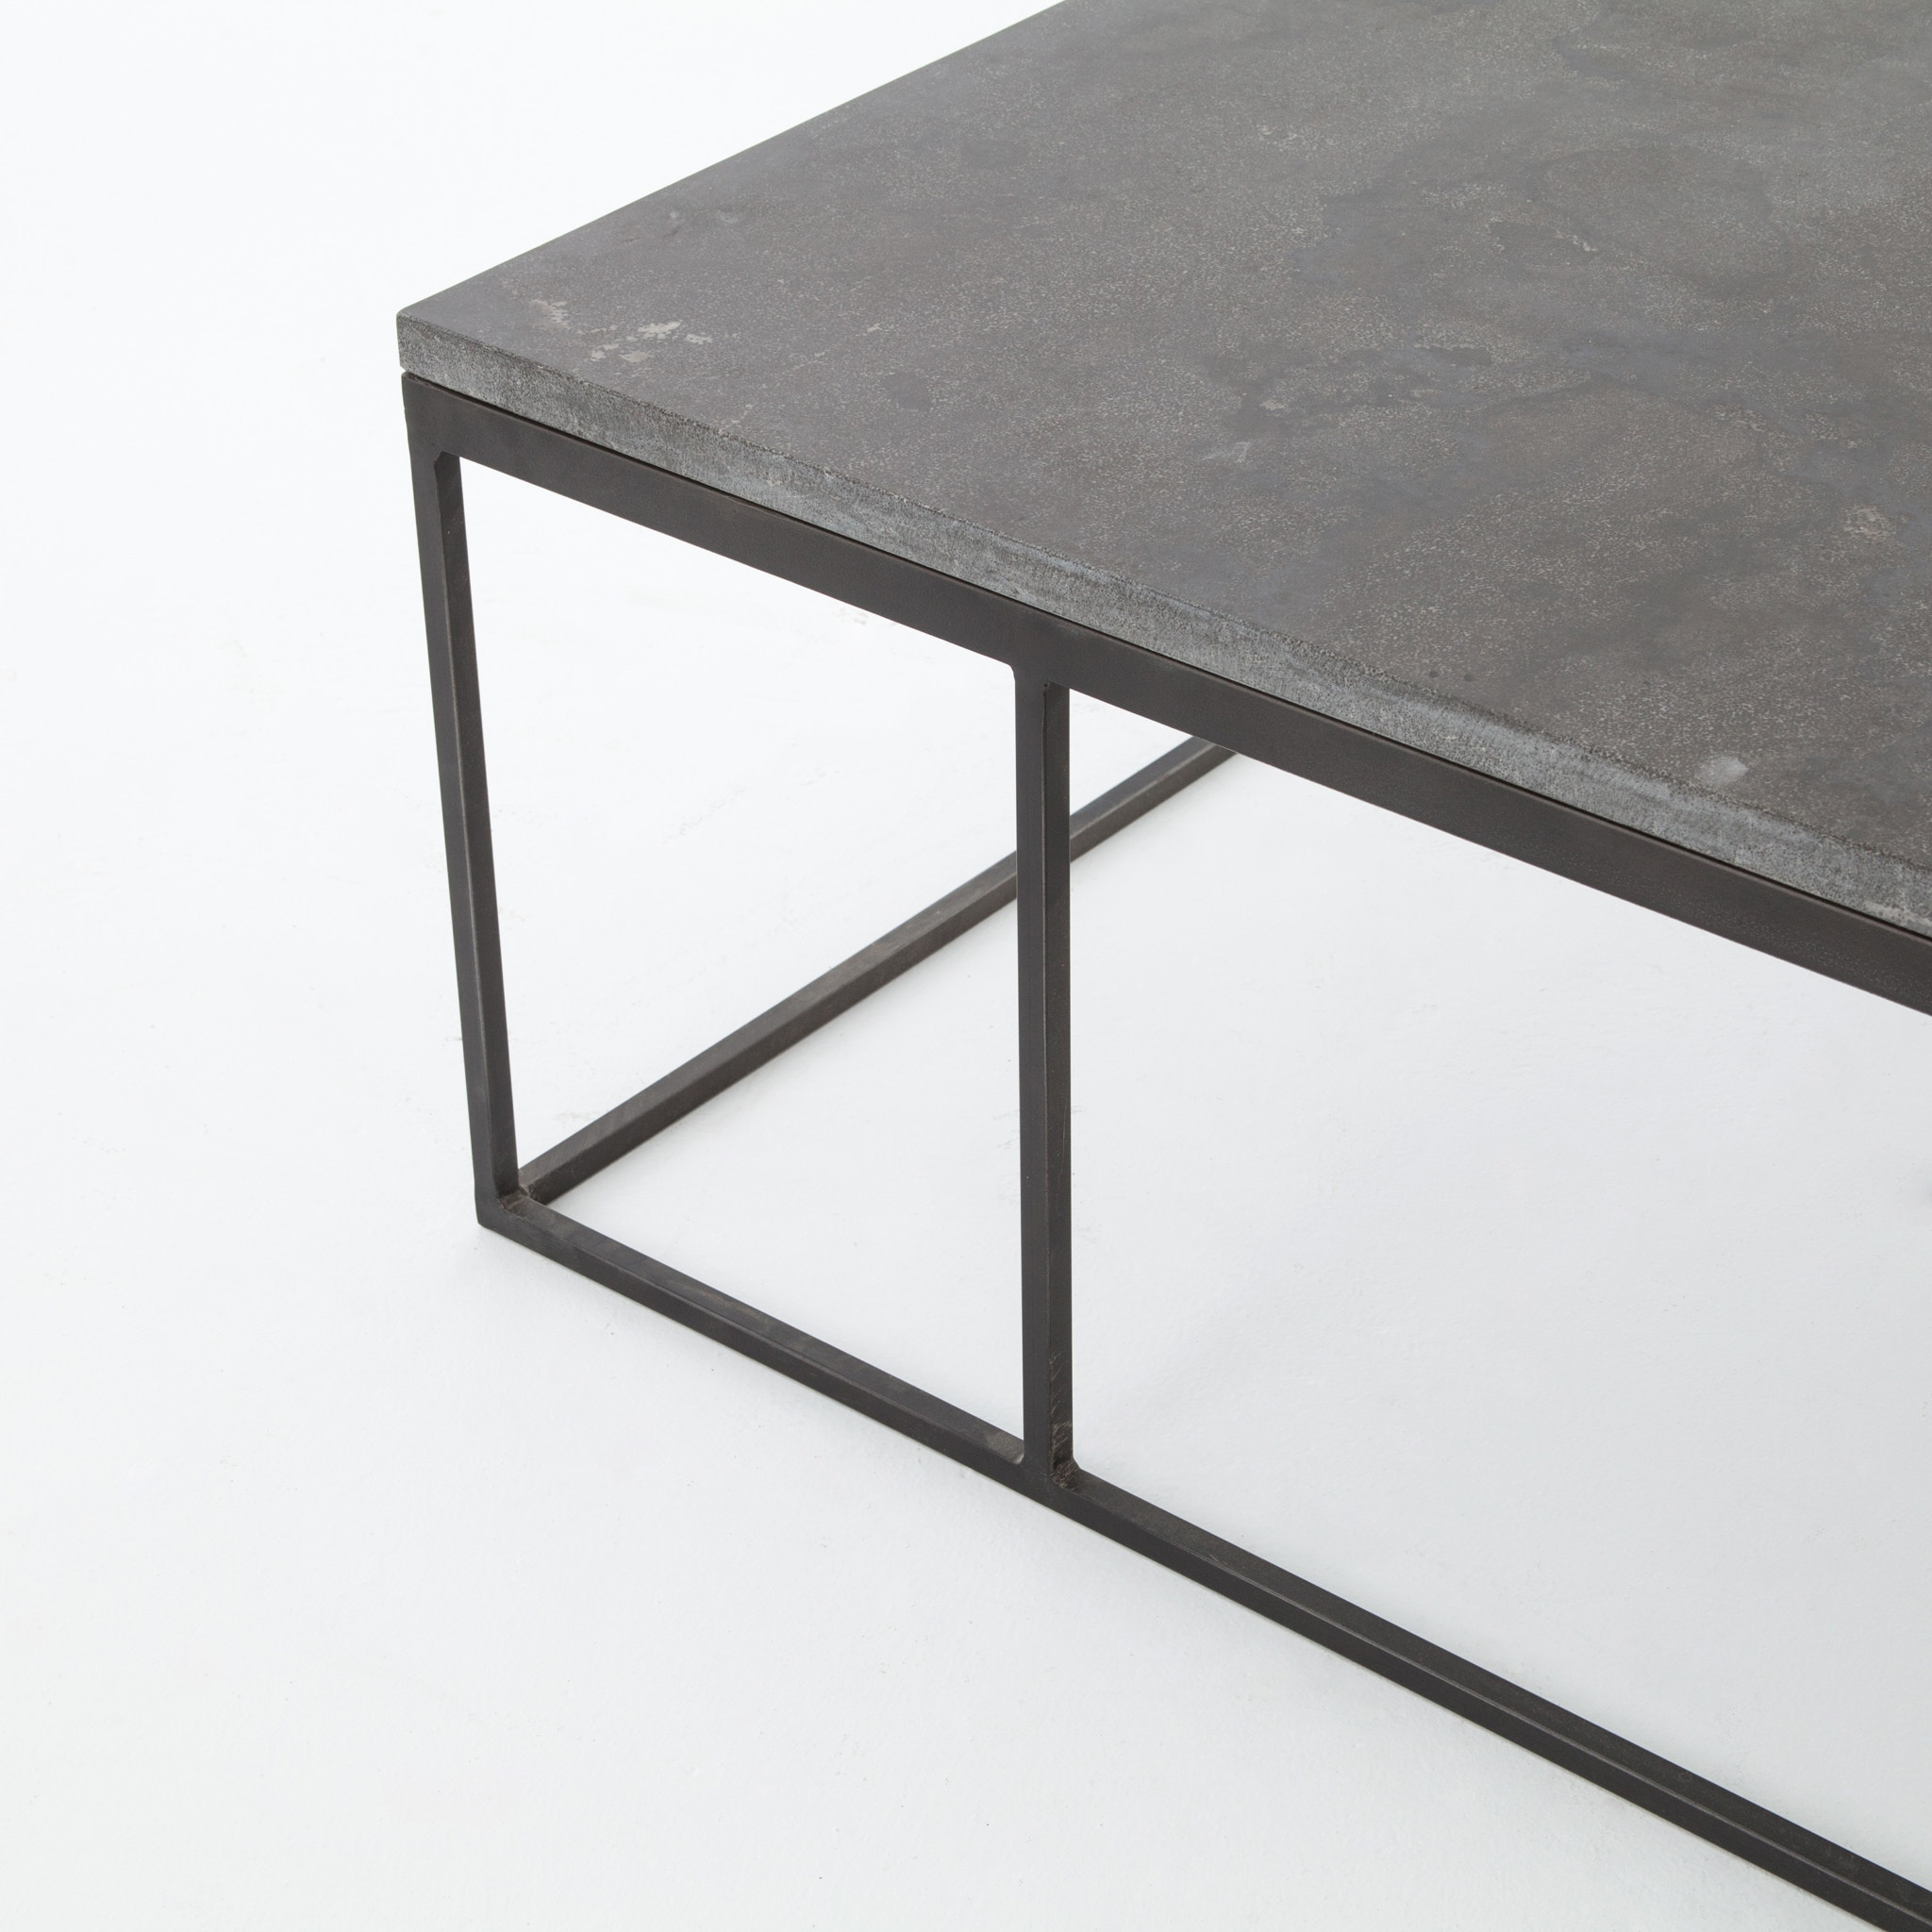 Four Hands Furniture Harlow Small Coffee Table CIMP 10F